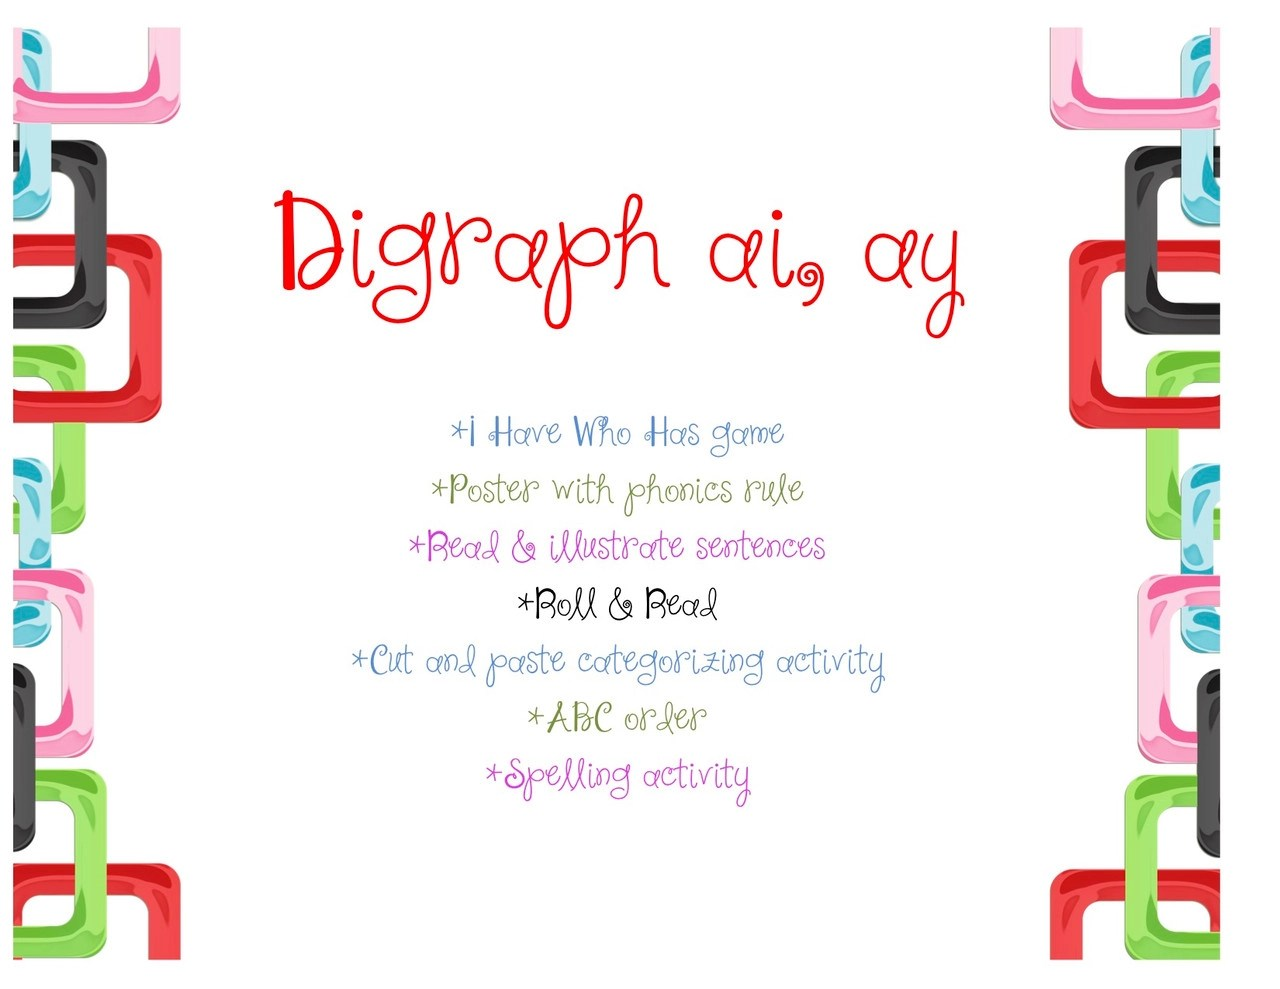 hight resolution of Digraph ai/ay - Amped Up Learning